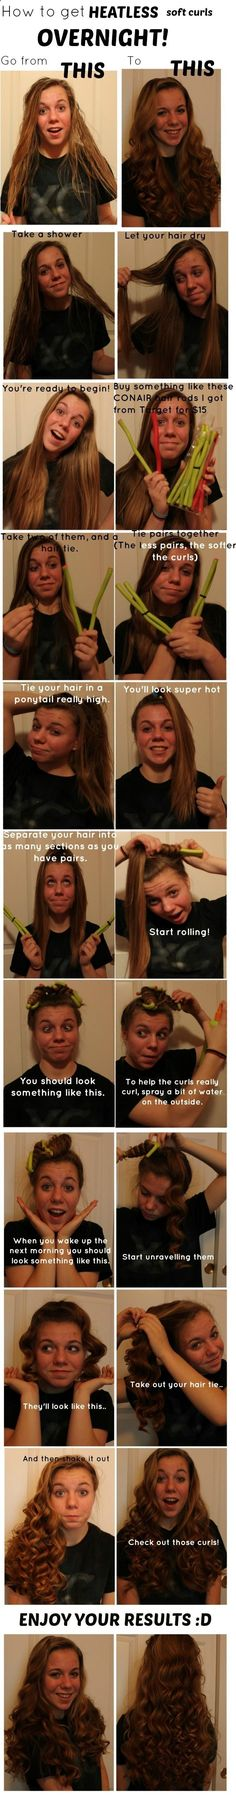 Easy curled hair